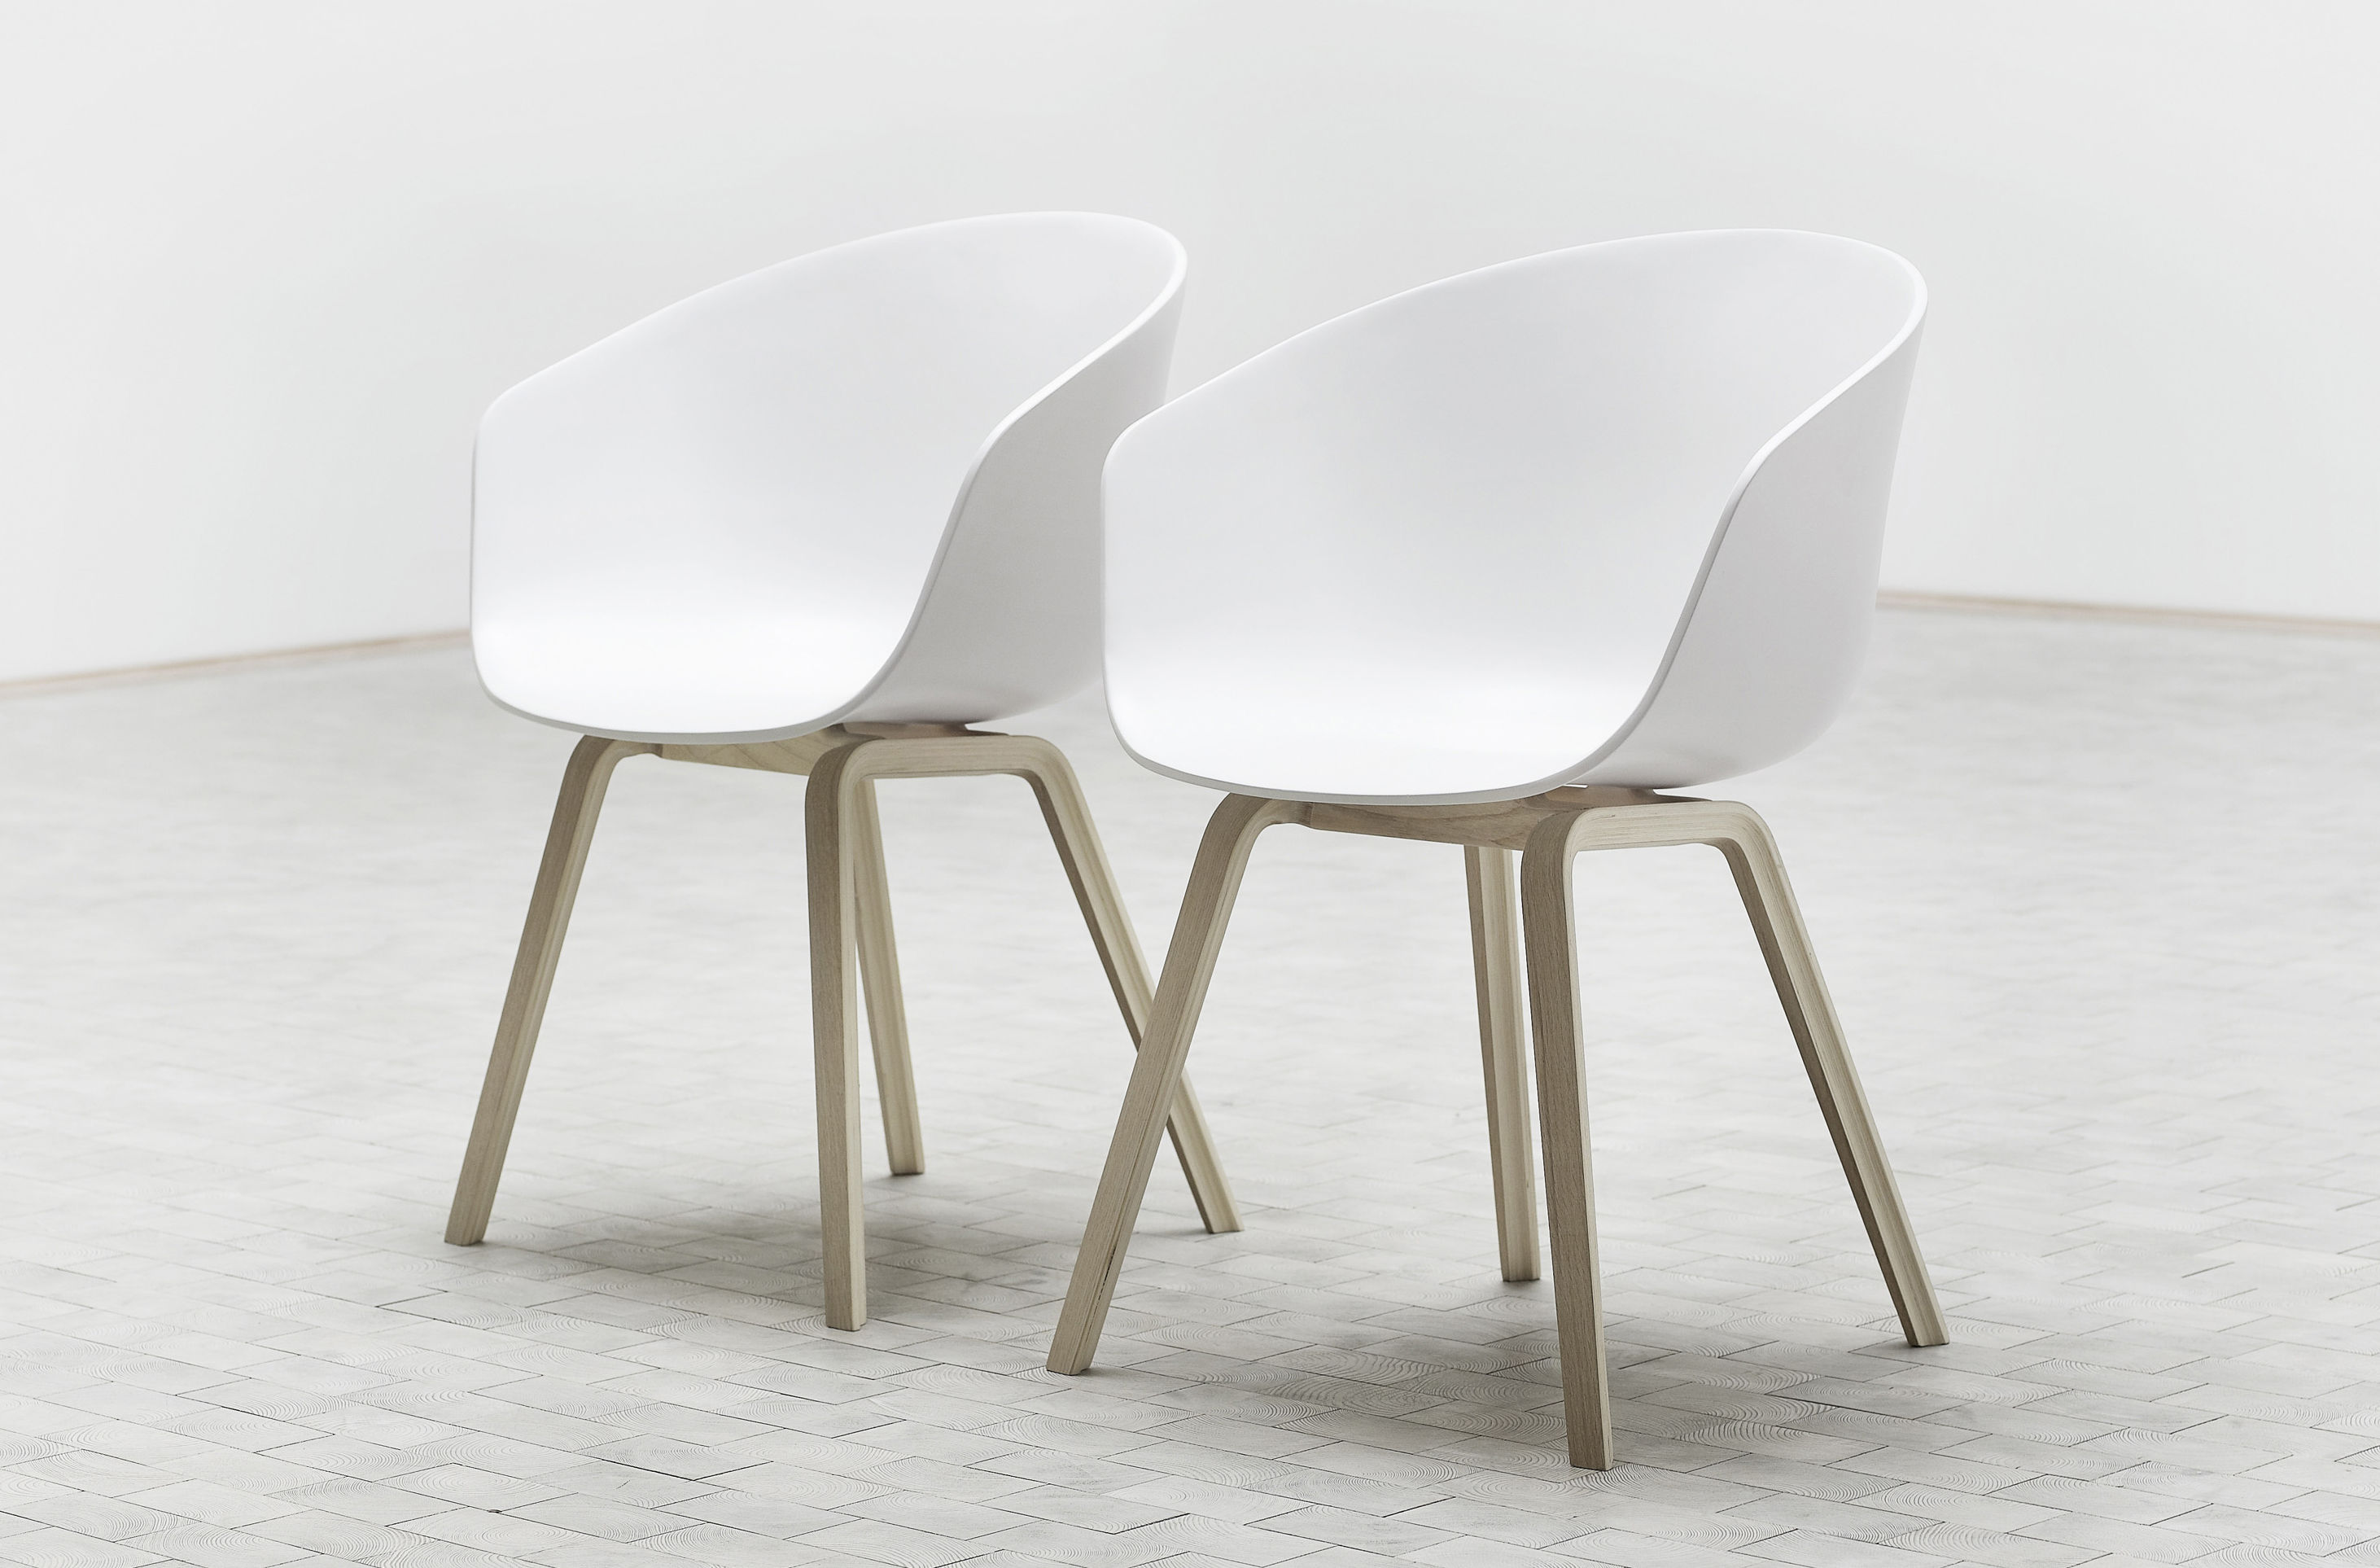 Fauteuil hay about a chair aac blanc pieds bois made in design